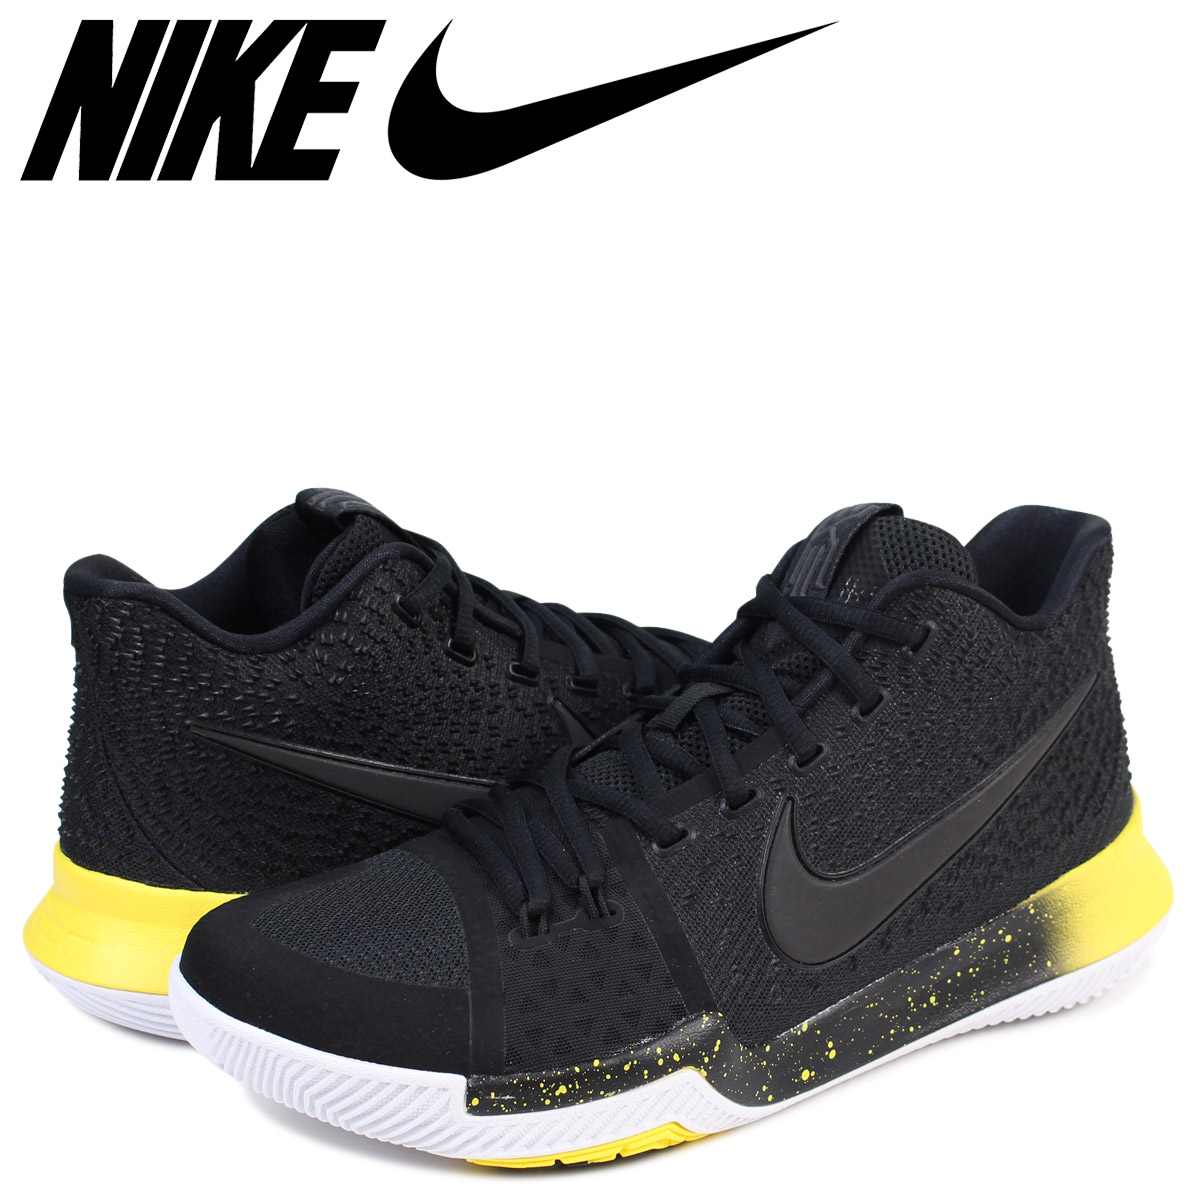 hot sale online 12f10 4439d NIKE Nike chi Lee 3 sneakers KYRIE 3 EP 852,396-901 men's shoes black